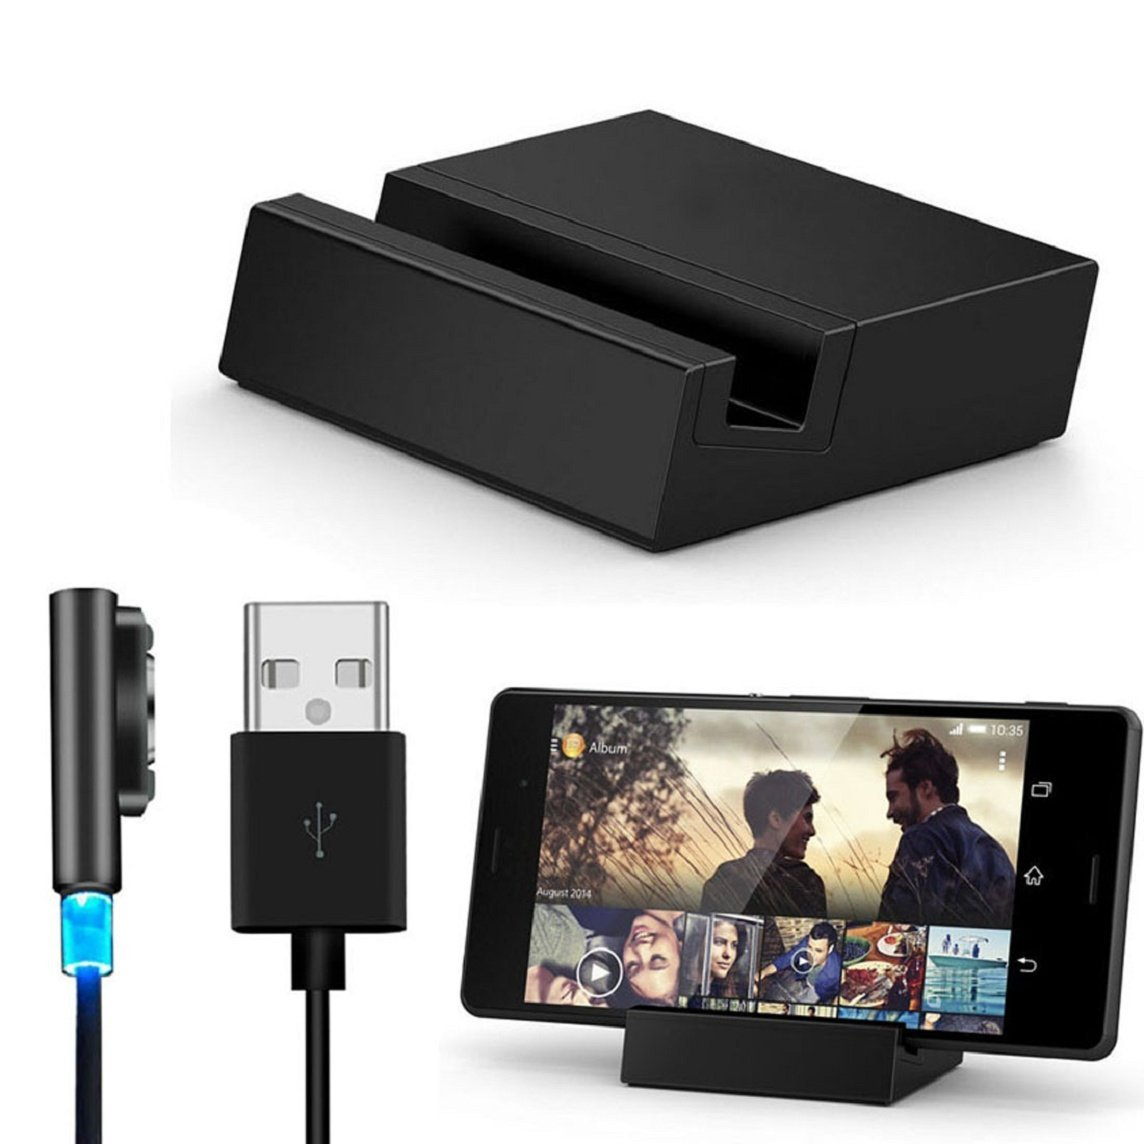 Bessky(TM) Black Friday Sale Cable Charger ,Metal Magnetic USB Cable + Desktop Dock Set for Sony Xperia Z3 / Z3 Compact